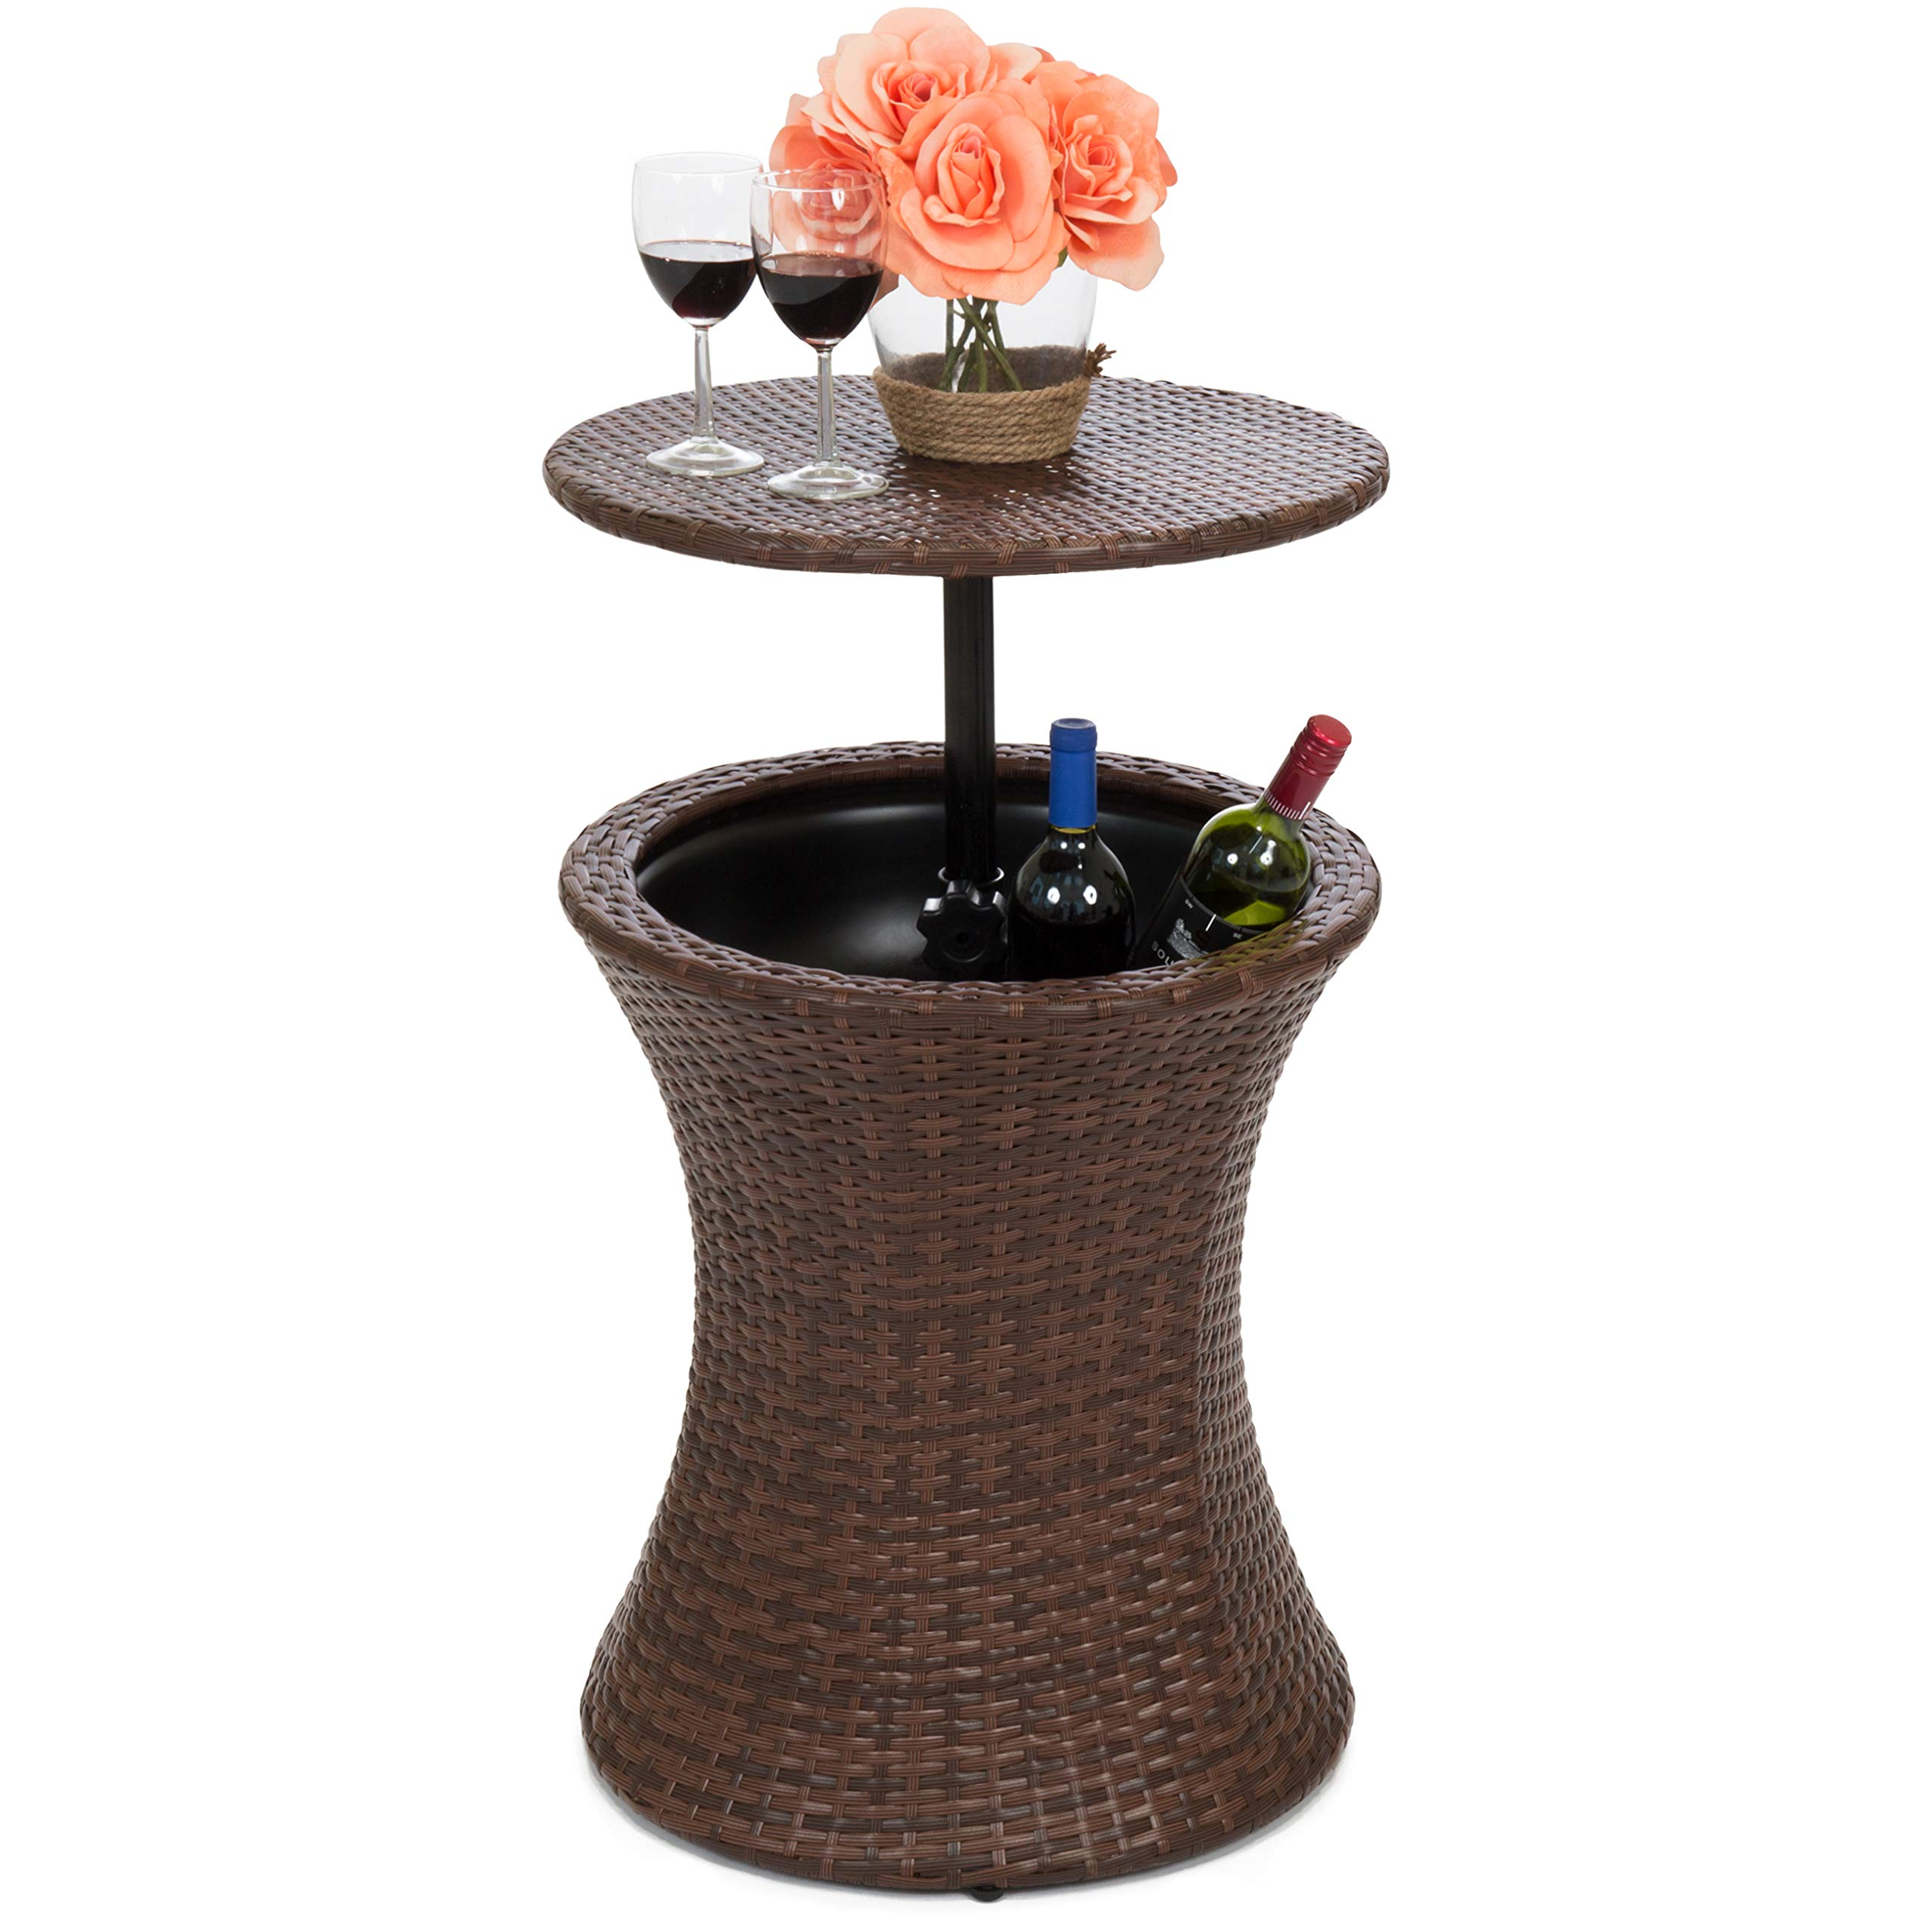 Best Choice Products 7.5-Gallon Outdoor All-Weather Wicker Patio Pool Cooler Bar Table w/Adjustable Top - Brown